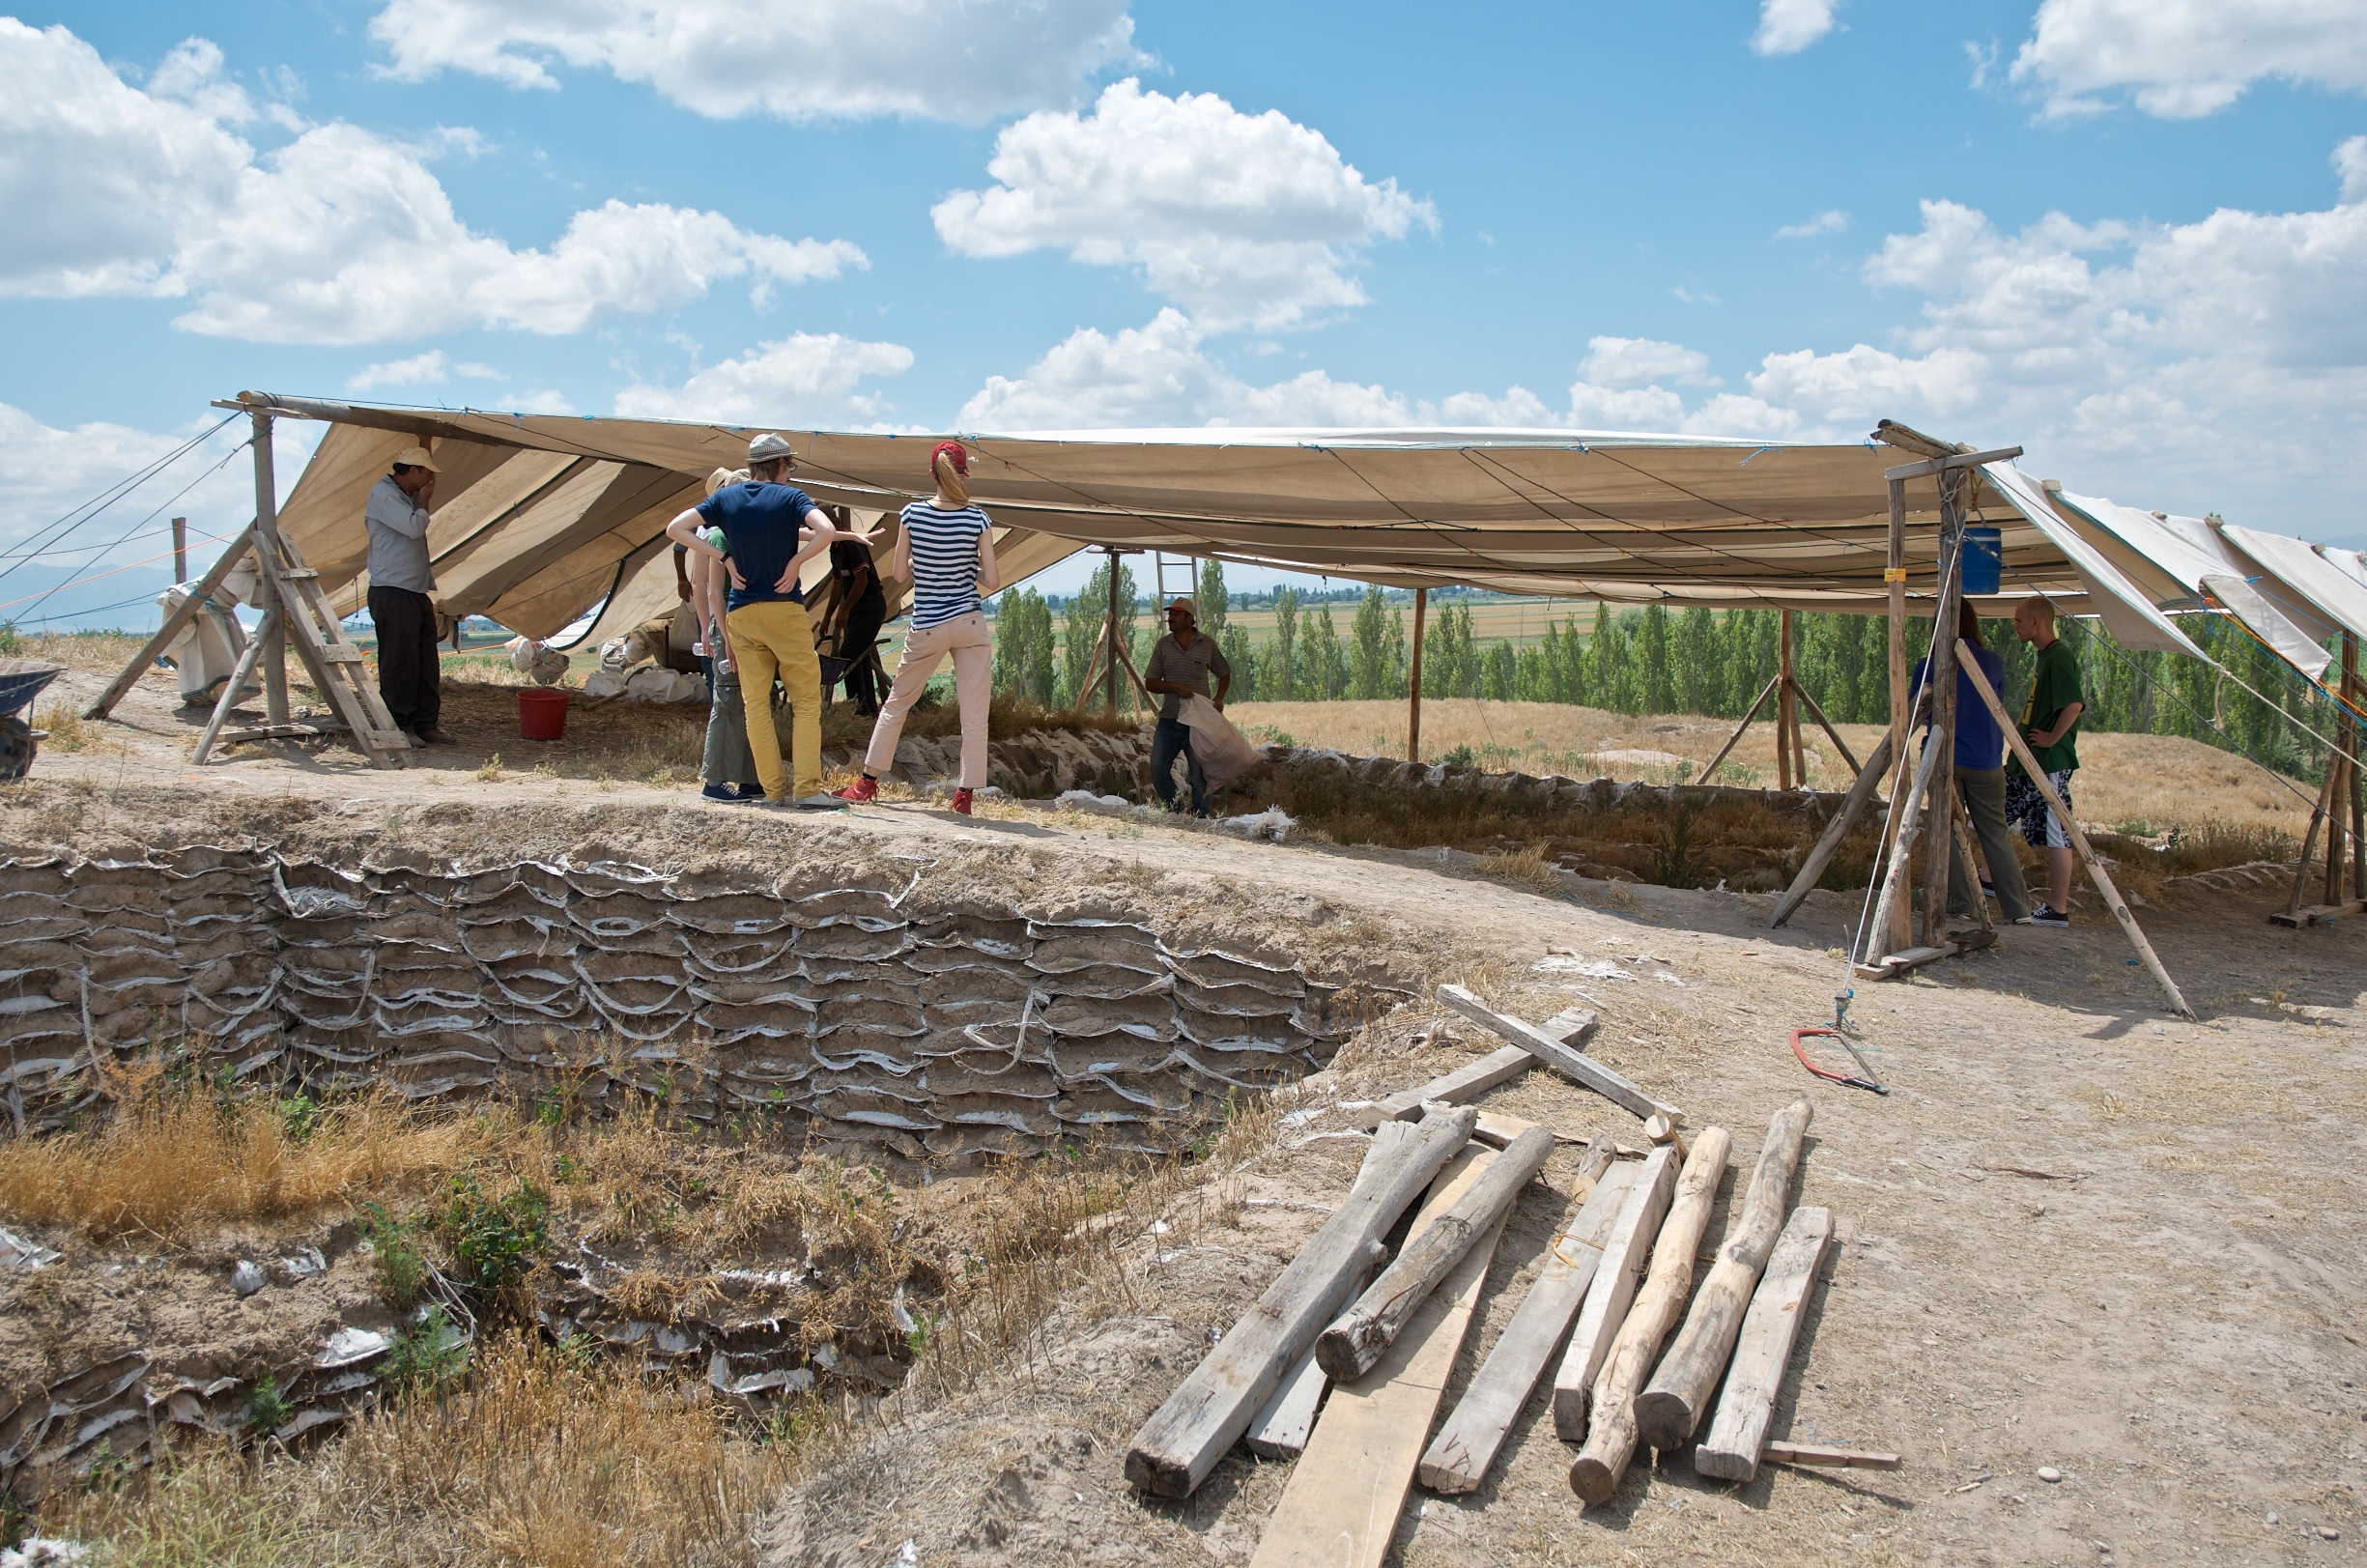 Çatalhöyük team members inspecting the TP Connection excavation area at the beginning of the 2015 season.